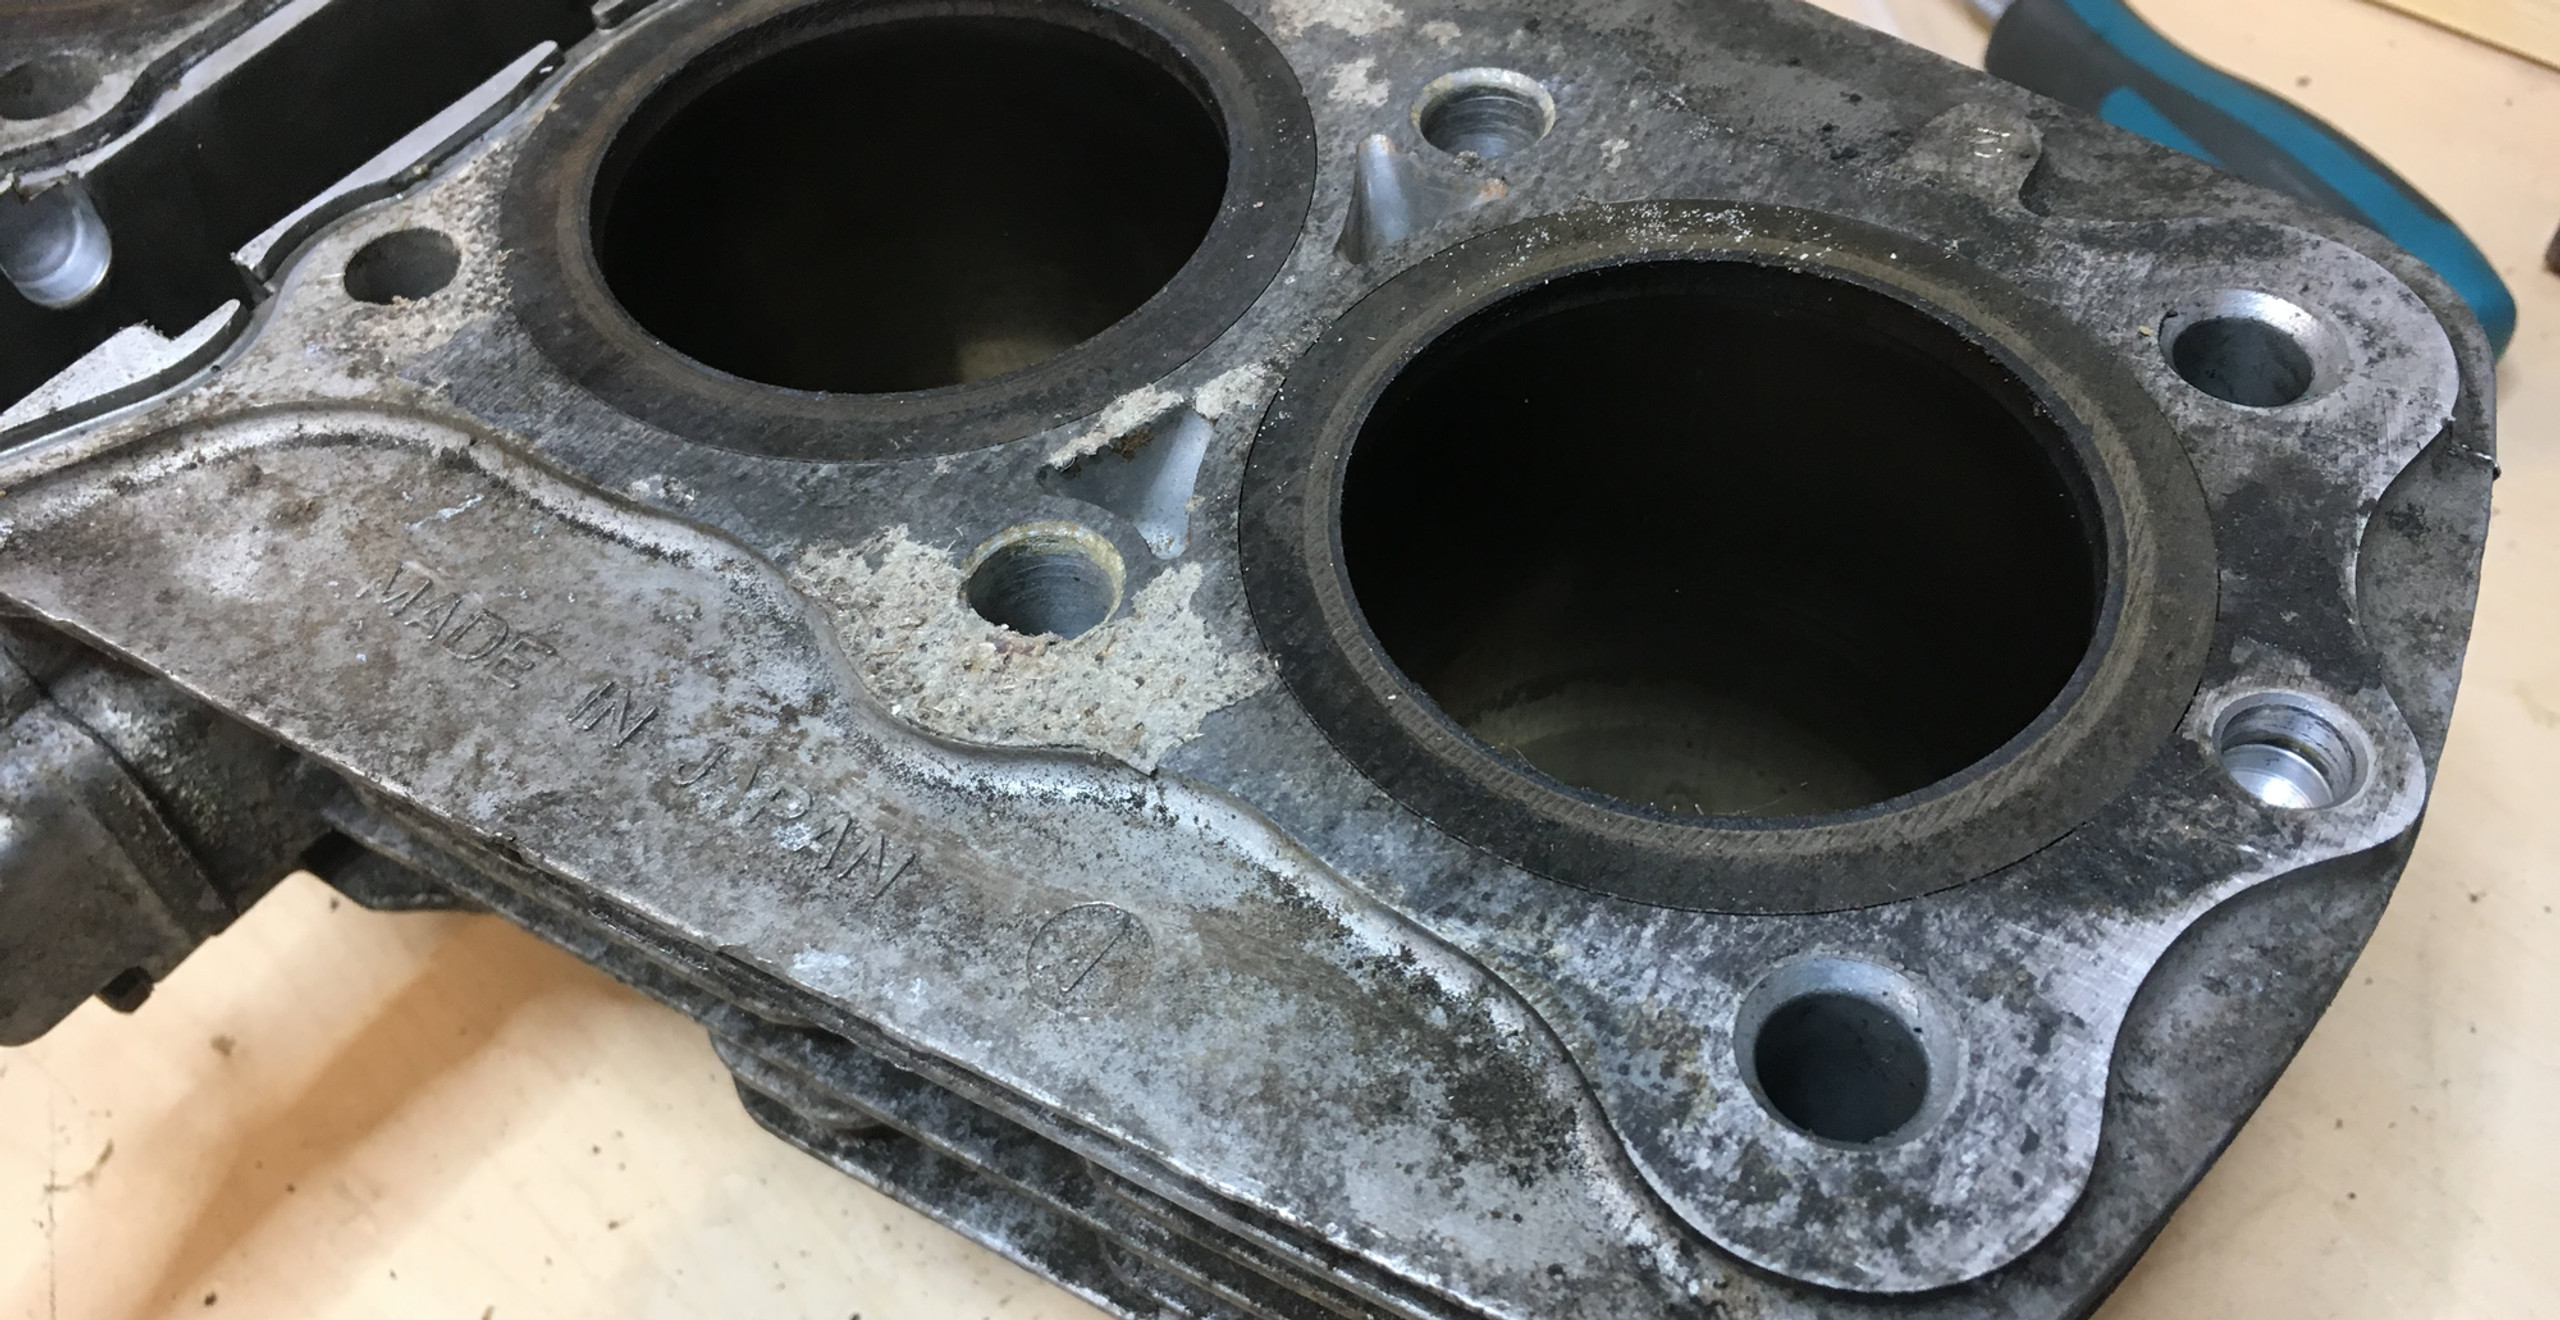 Yeah, we're gonna need to bore those cylinders, put some new pistons and rings in there.